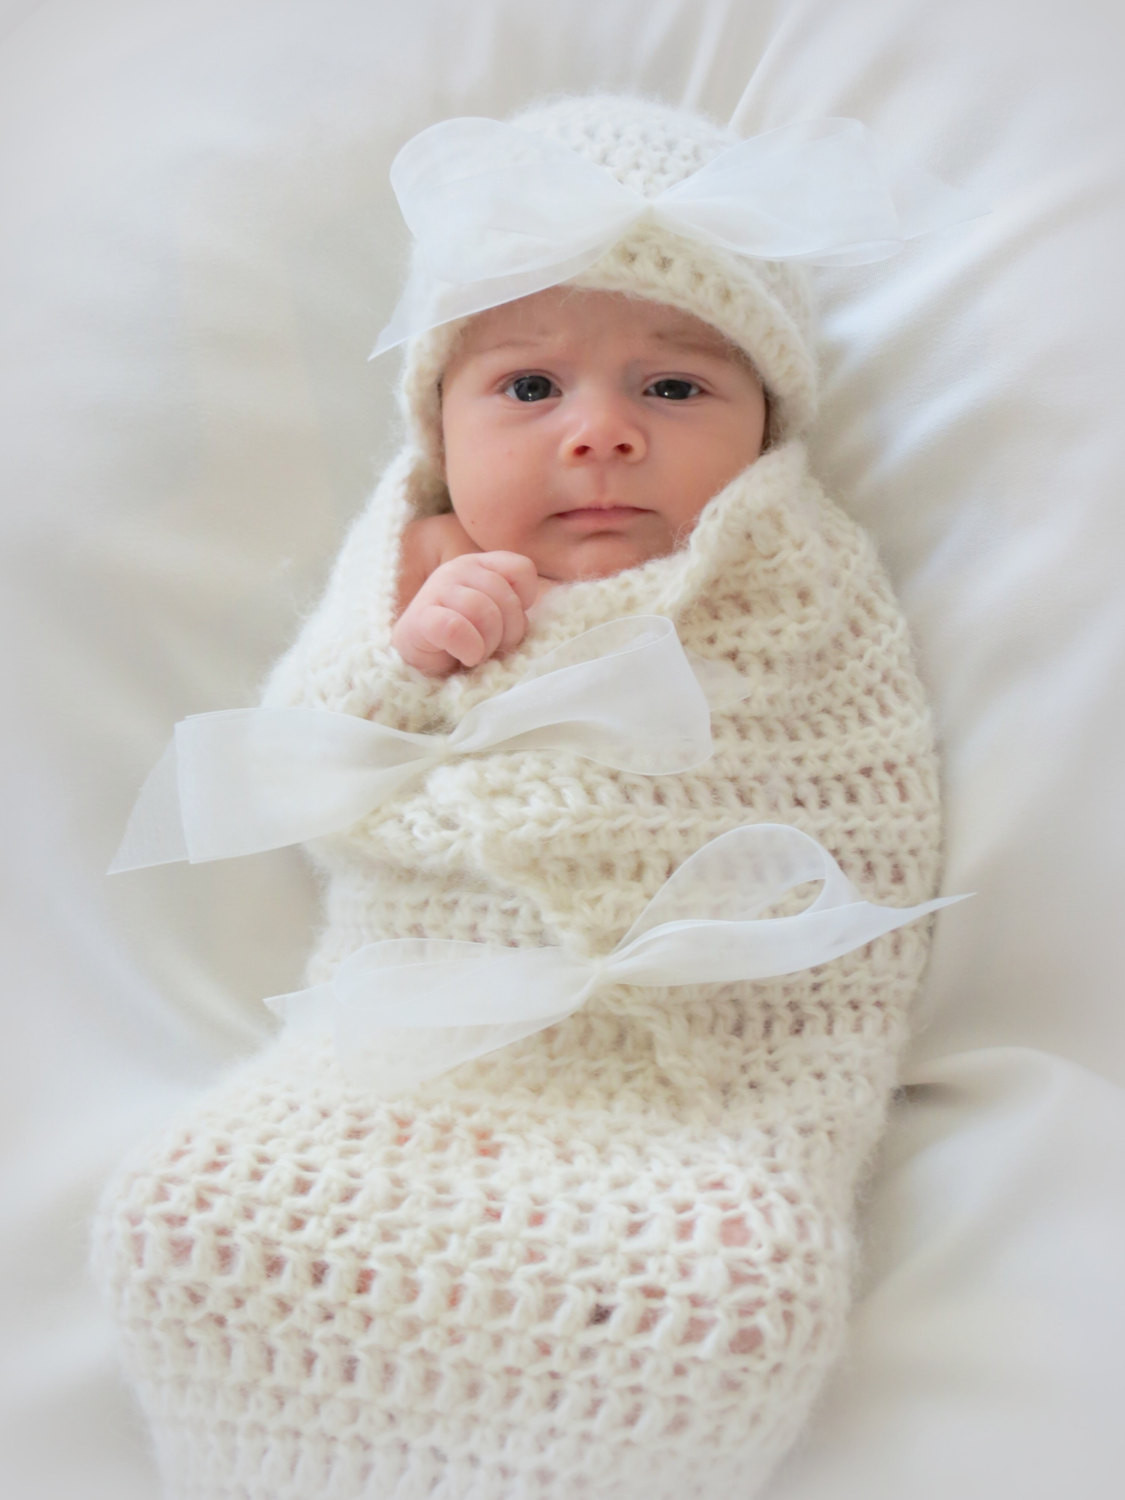 Best Of Crochet Baby Cocoon and Hat Pattern Newborn Prop Crochet Baby Cocoon Of Great 44 Models Crochet Baby Cocoon